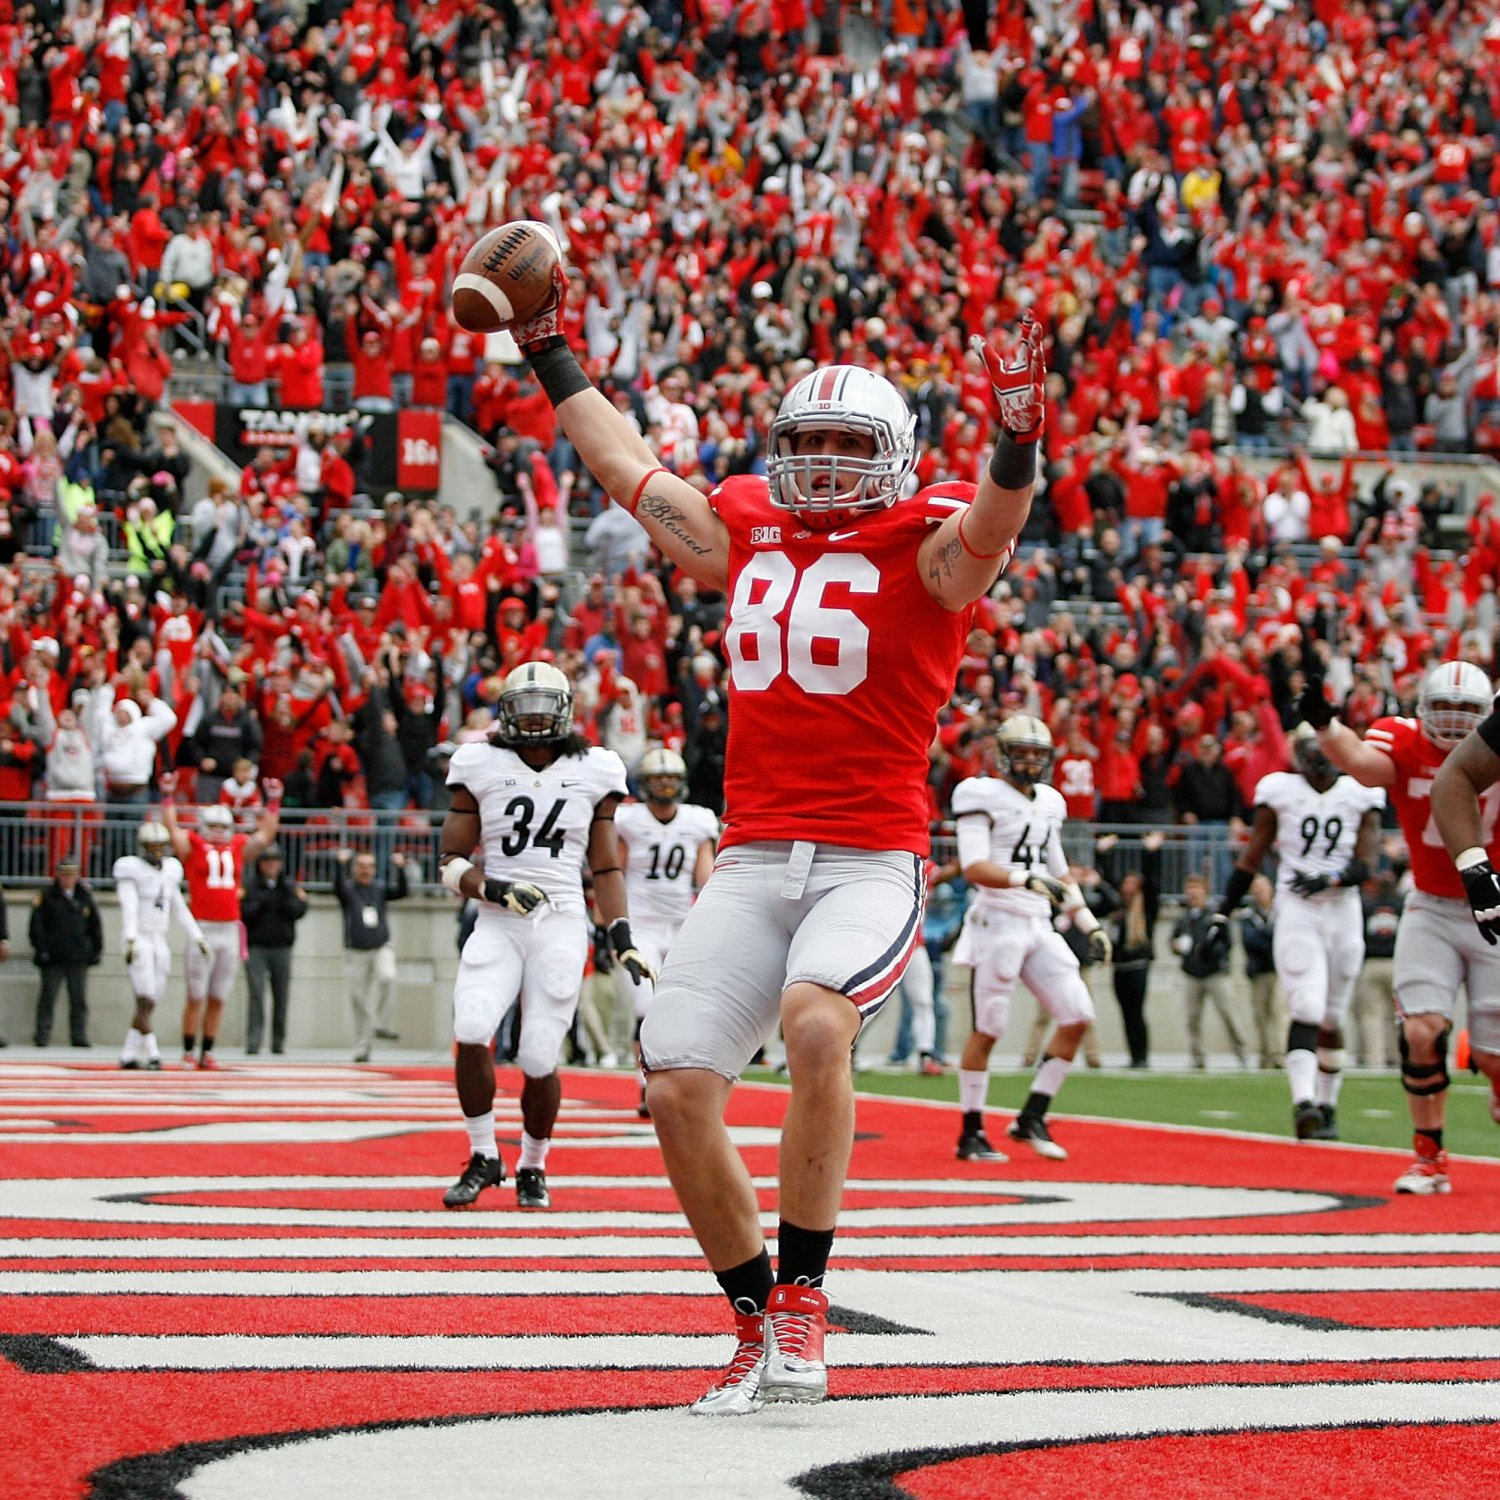 Ohio State Football: Why College Football Fans Should Root for a Buckeyes Loss | Bleacher Report